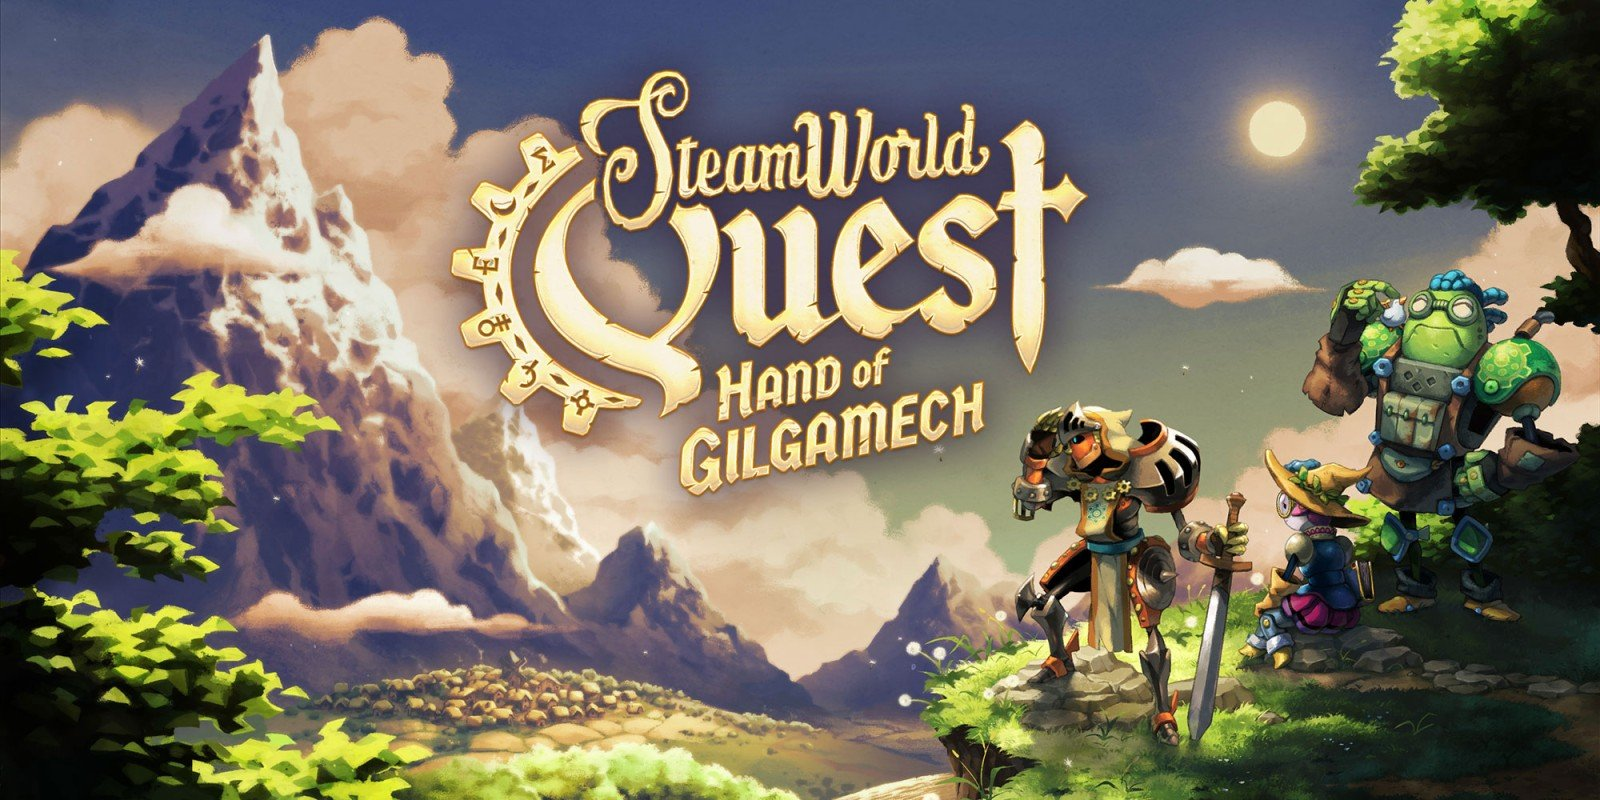 SteamWorld Quest: Hand of Gilgamech Masthead